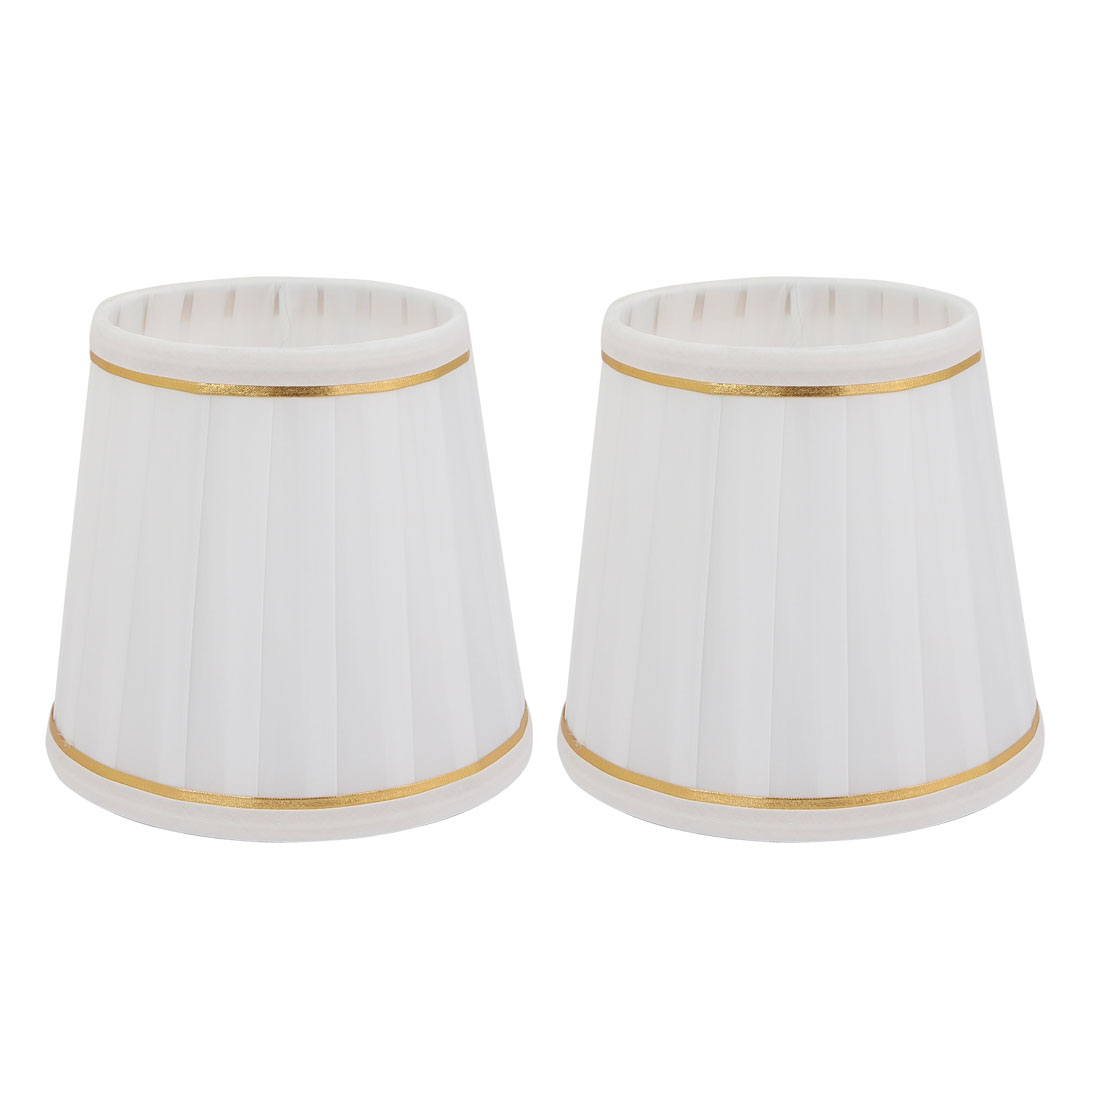 2pcs E14 Droplight Wall Light Candle Chandelier Lamp Shade Fabric-Covered